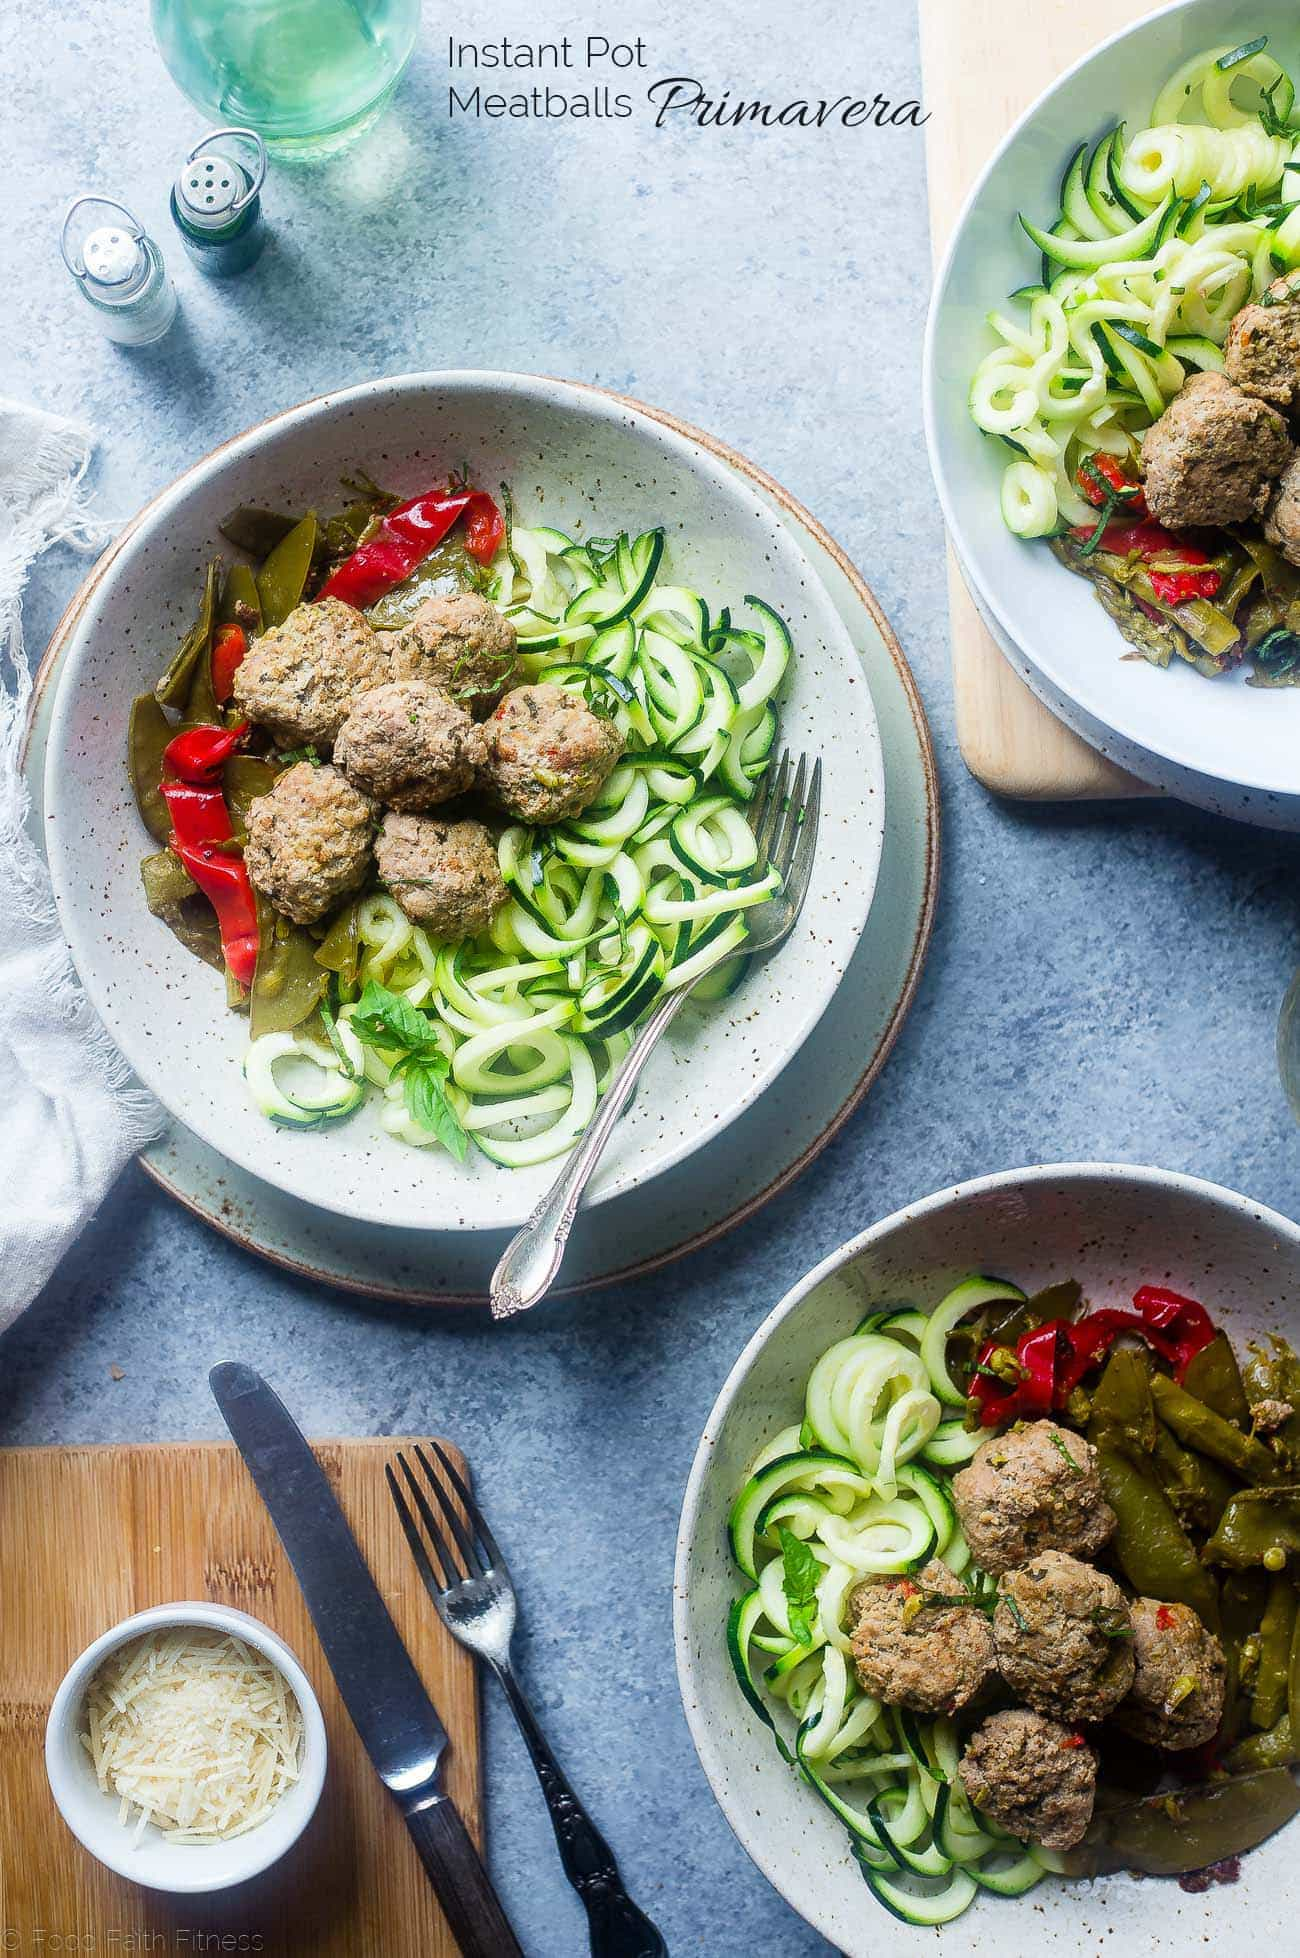 Whole30 Instant Pot Meatballs Primavera - These low carb instant pot meatballs taste like pasta primavera! They're a healthy, gluten free and paleo spring meal for only 300 calories!   Foodfaithfitness.com   @FoodFaithFit